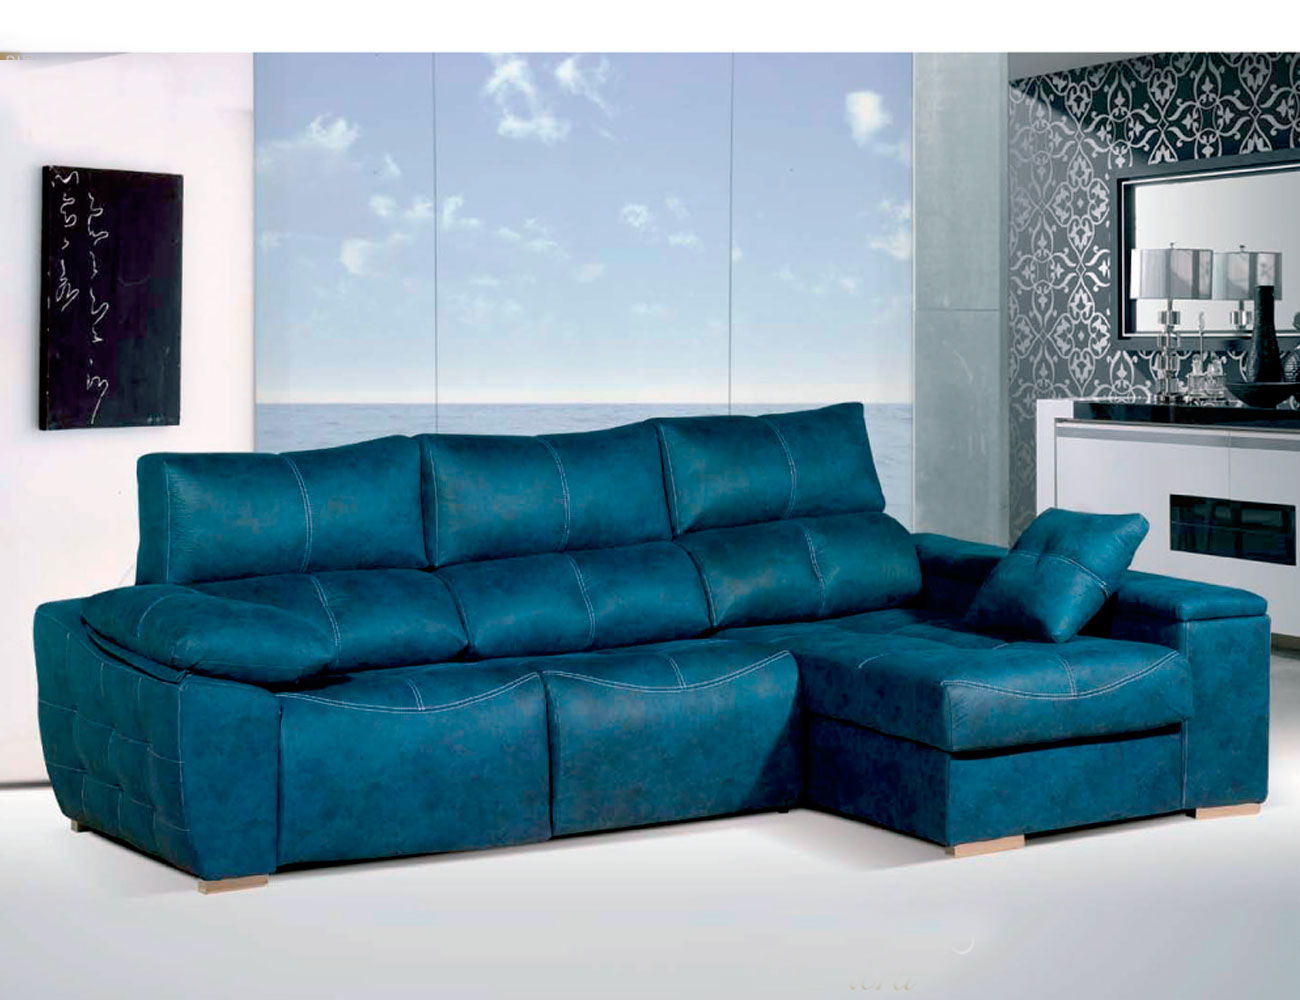 Sofa chaiselongue relax 2 motores anti manchas turquesa54